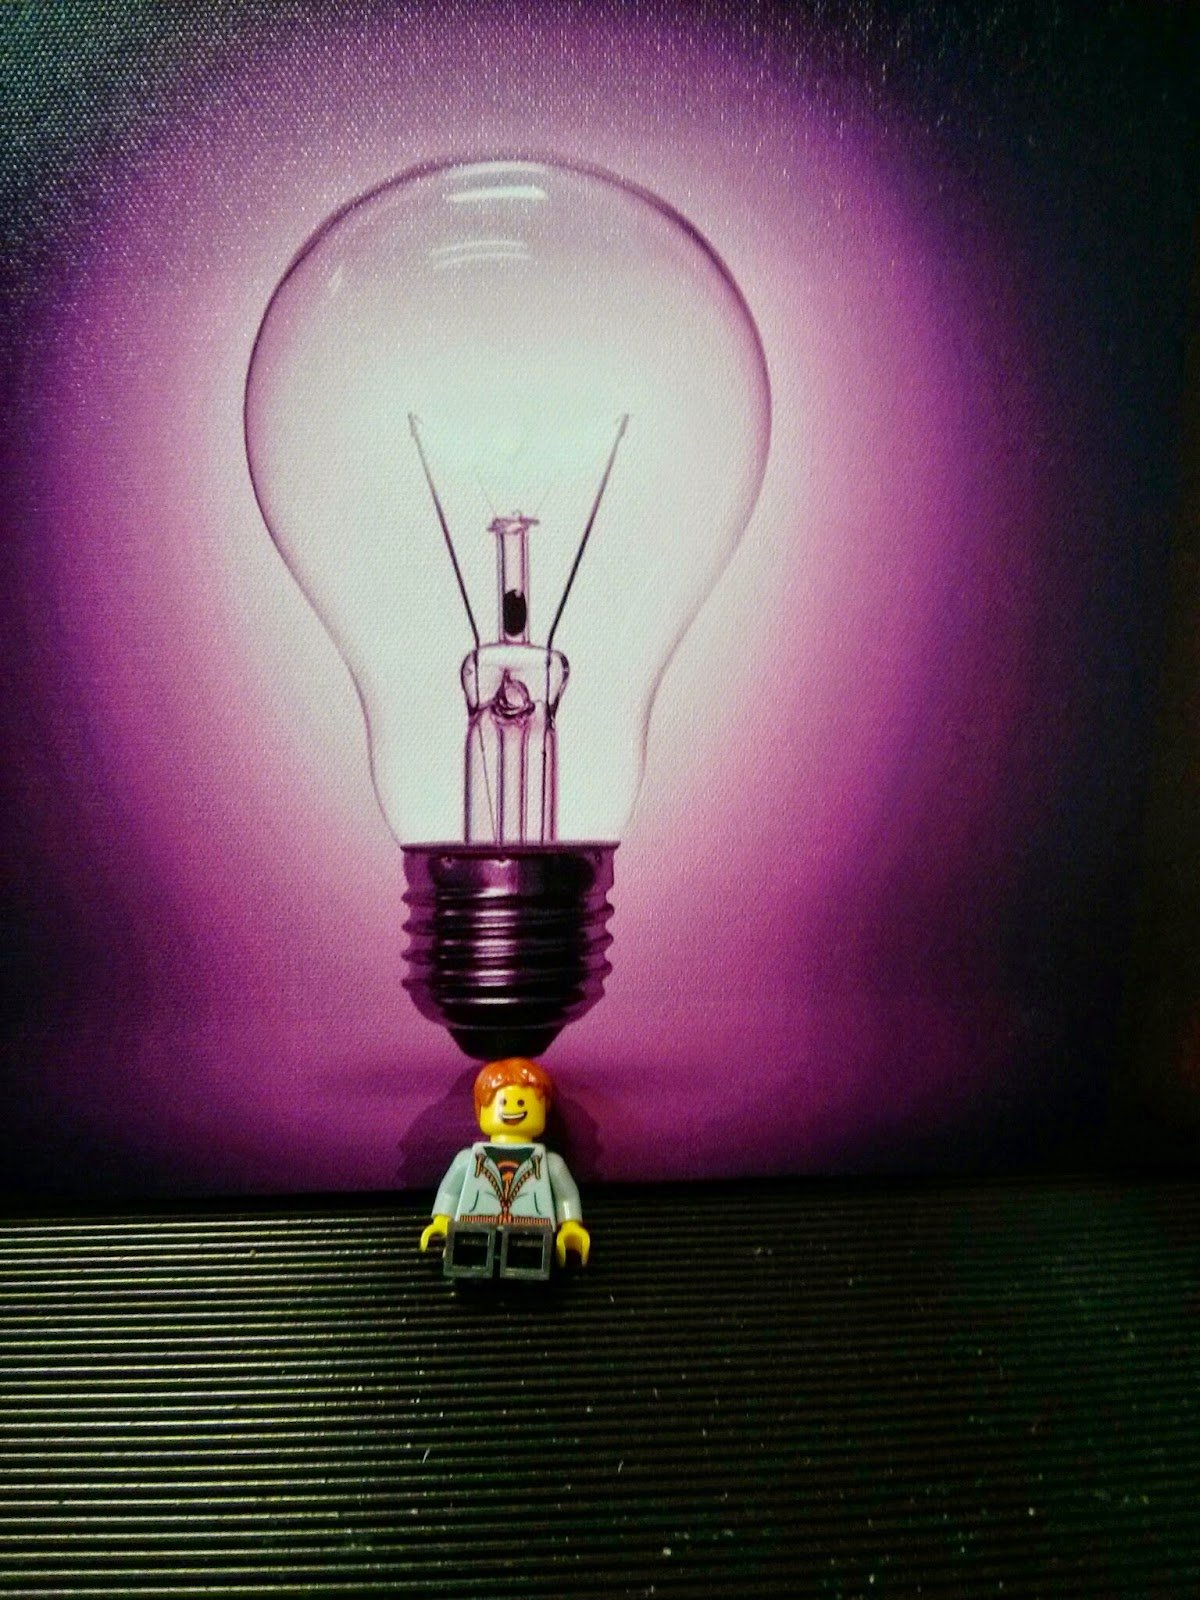 Kyle Emmett in front of a light bulb picture